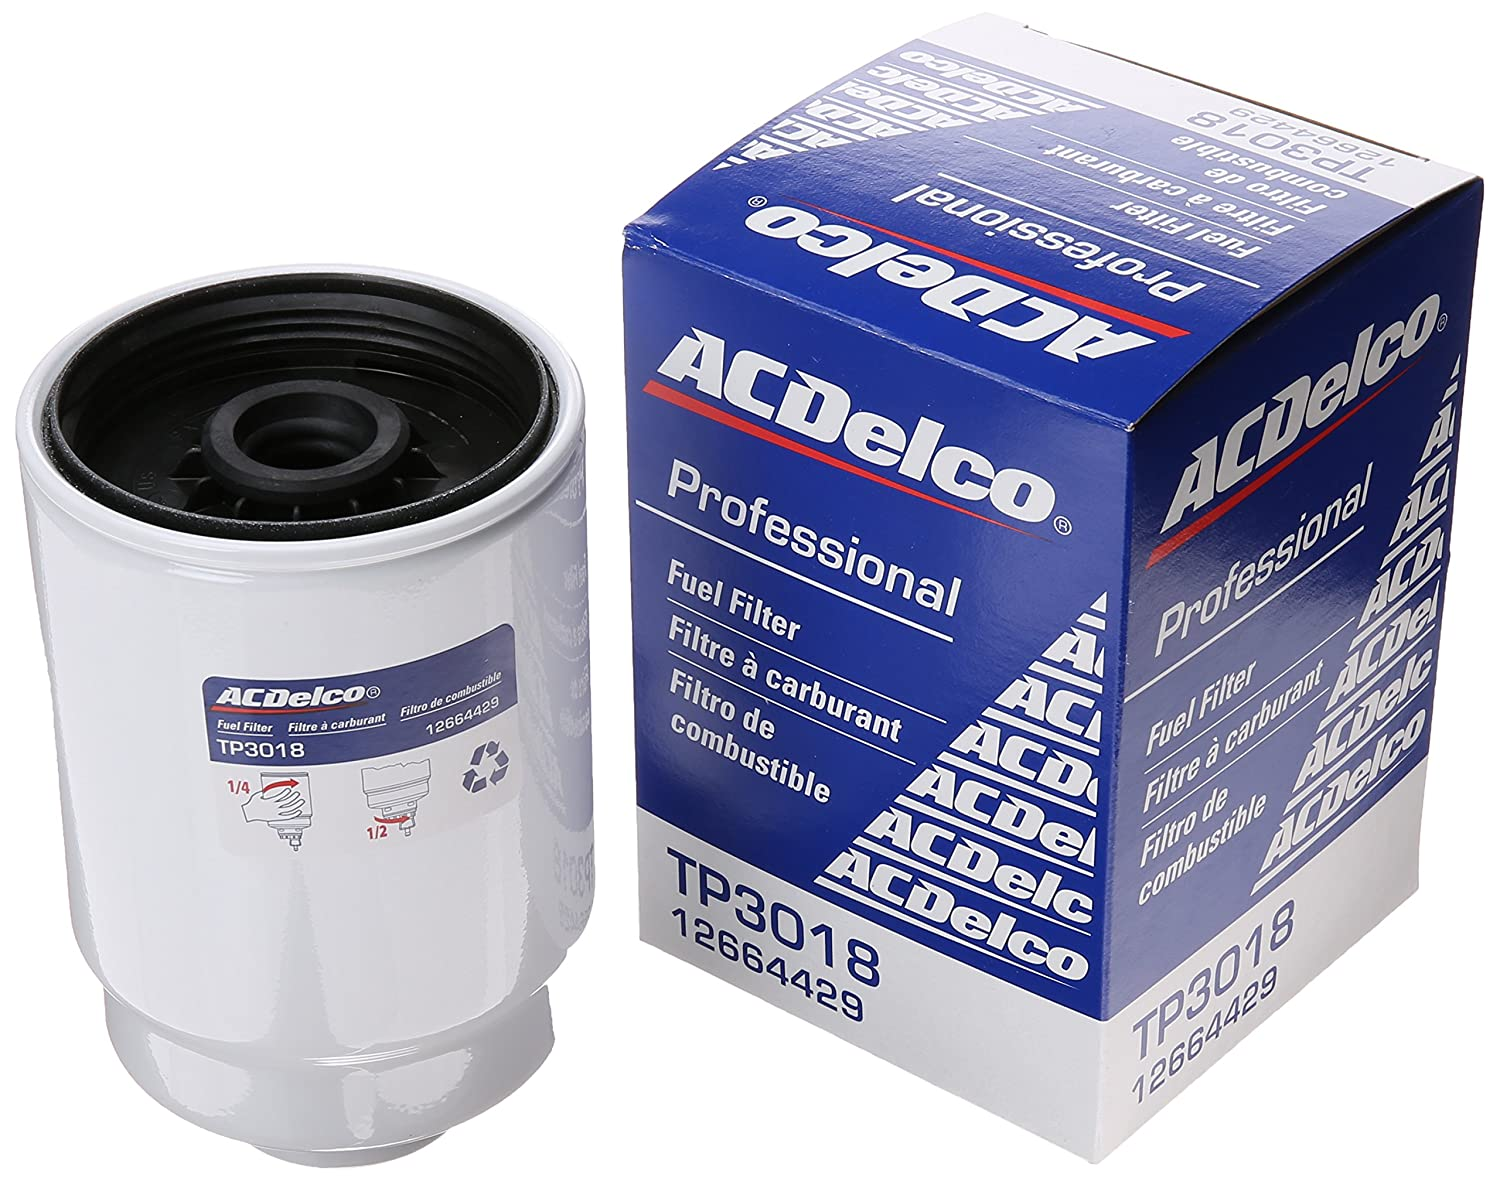 Acdelco Tp3018 Professional Fuel Filter With Seals 2007 Duramax Housing Automotive